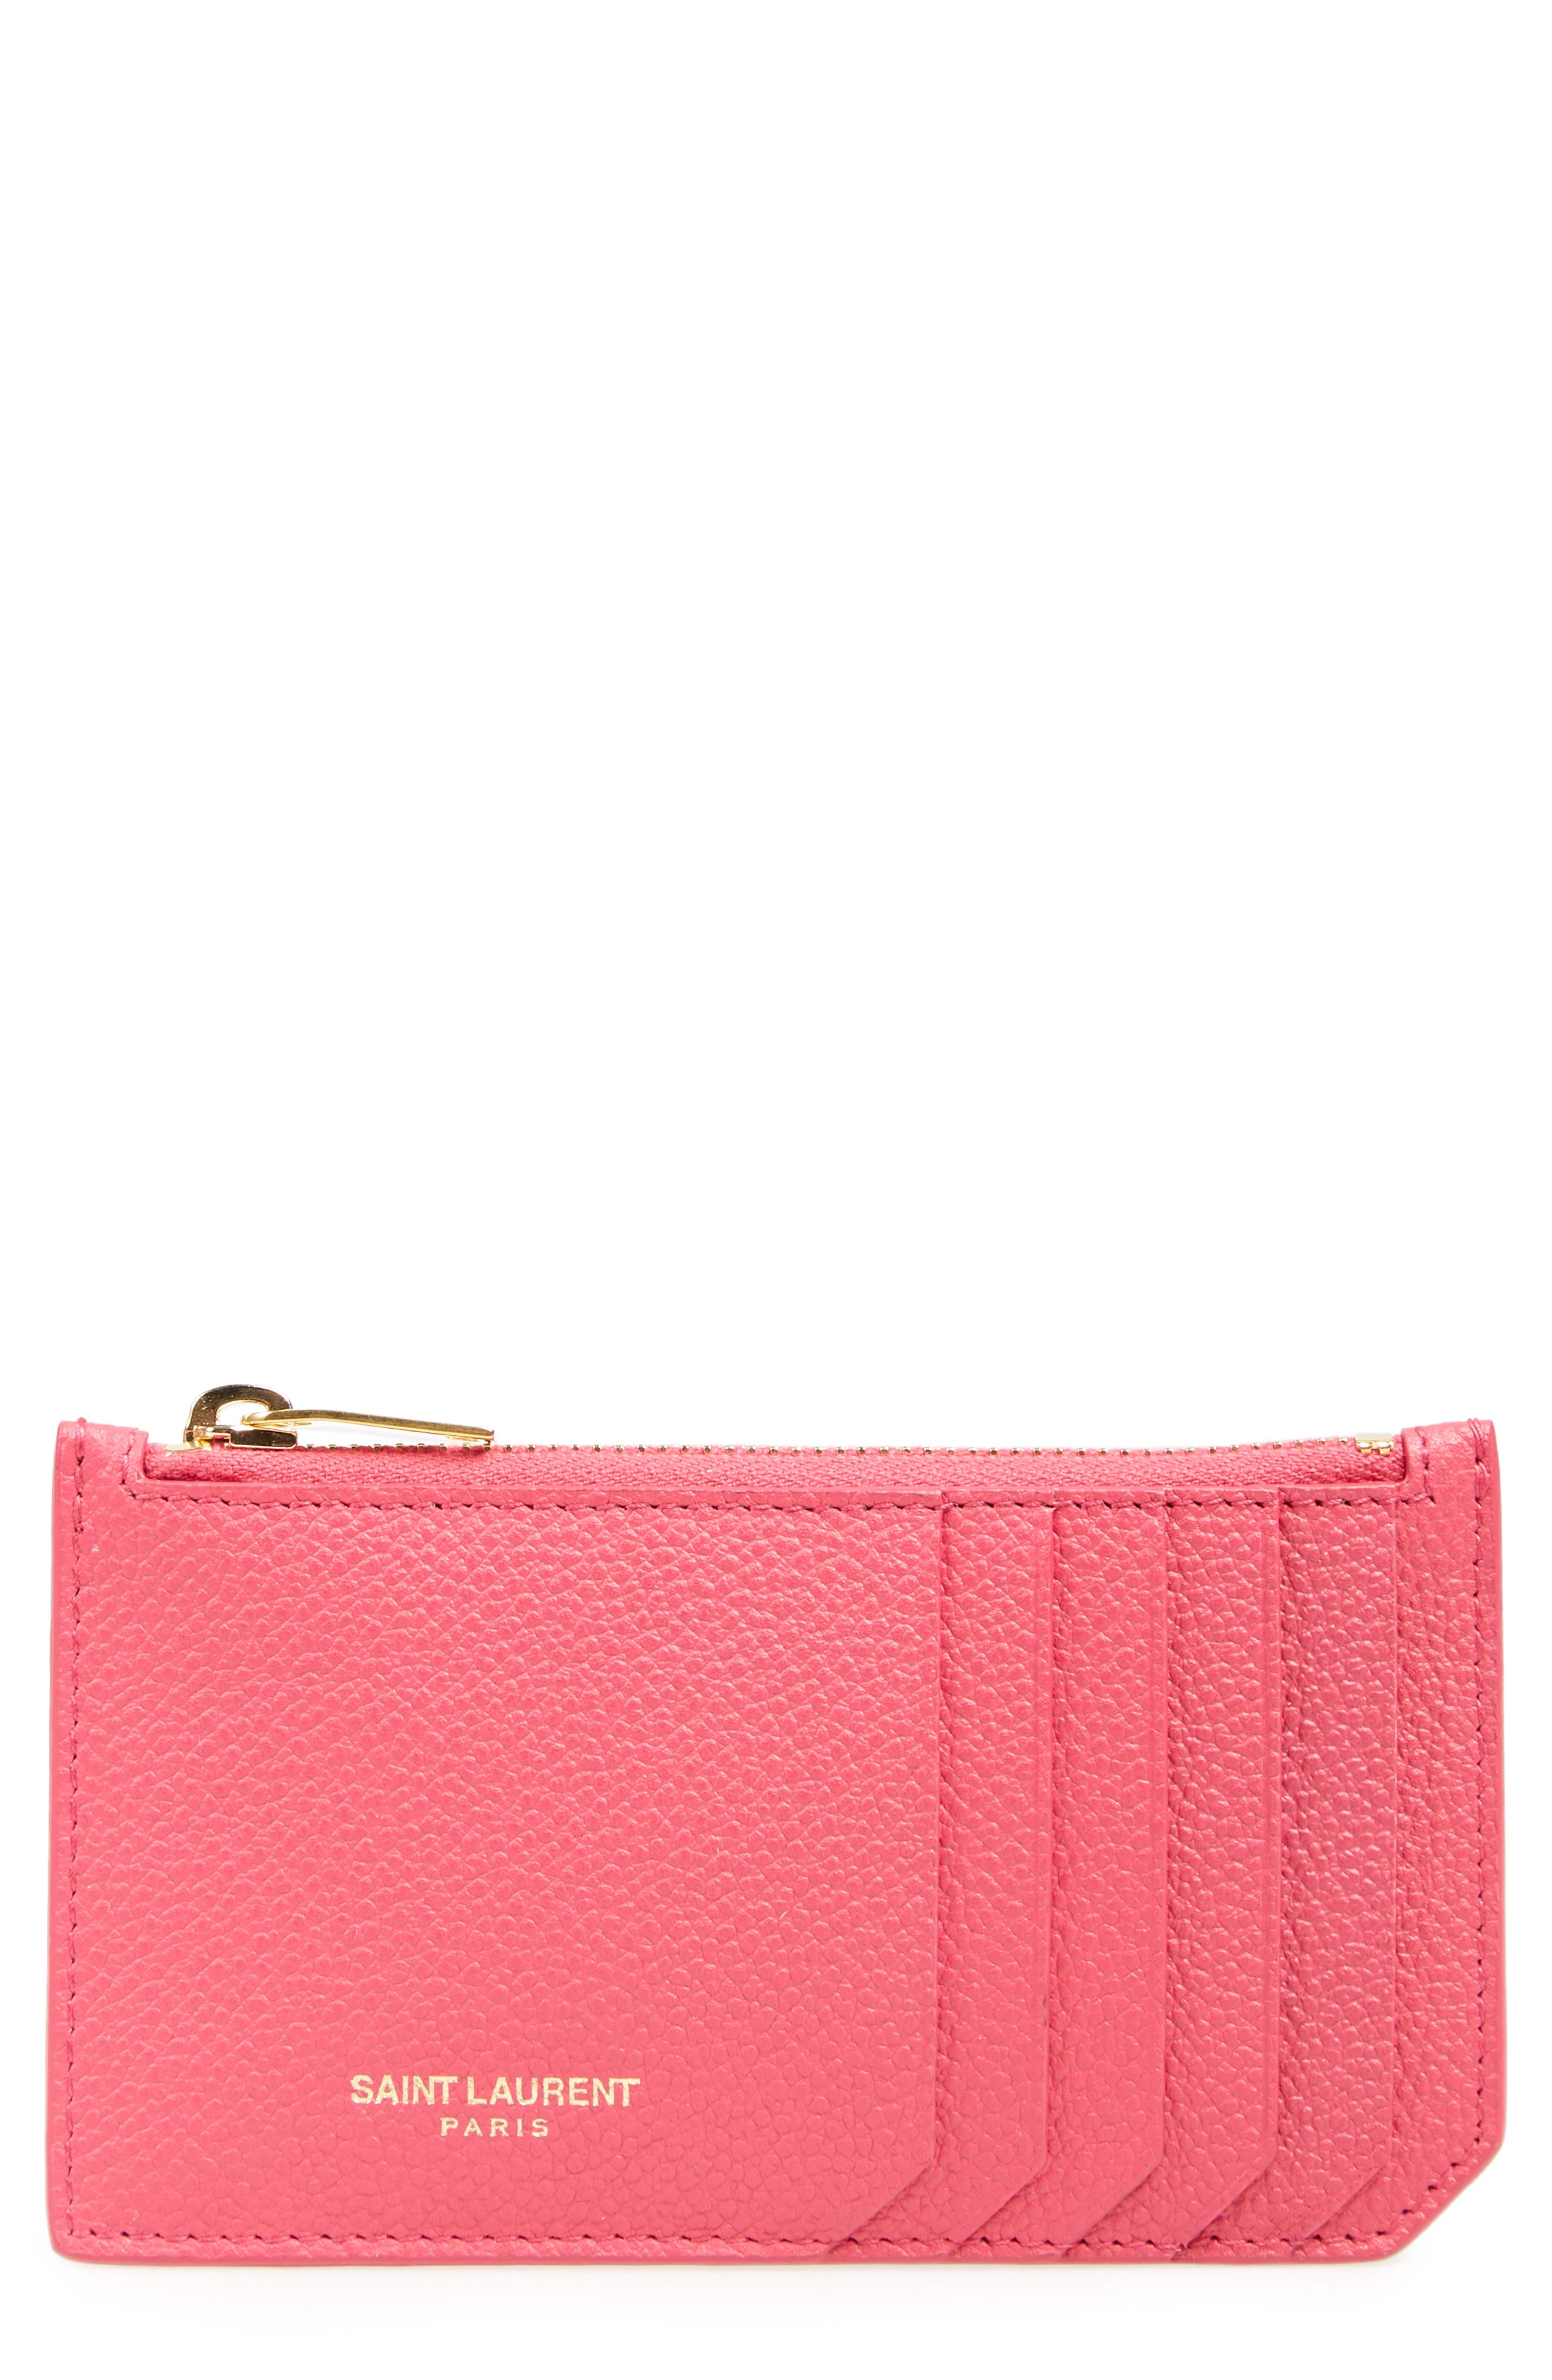 Leather Card Case,                             Main thumbnail 1, color,                             SHOCKING PINK